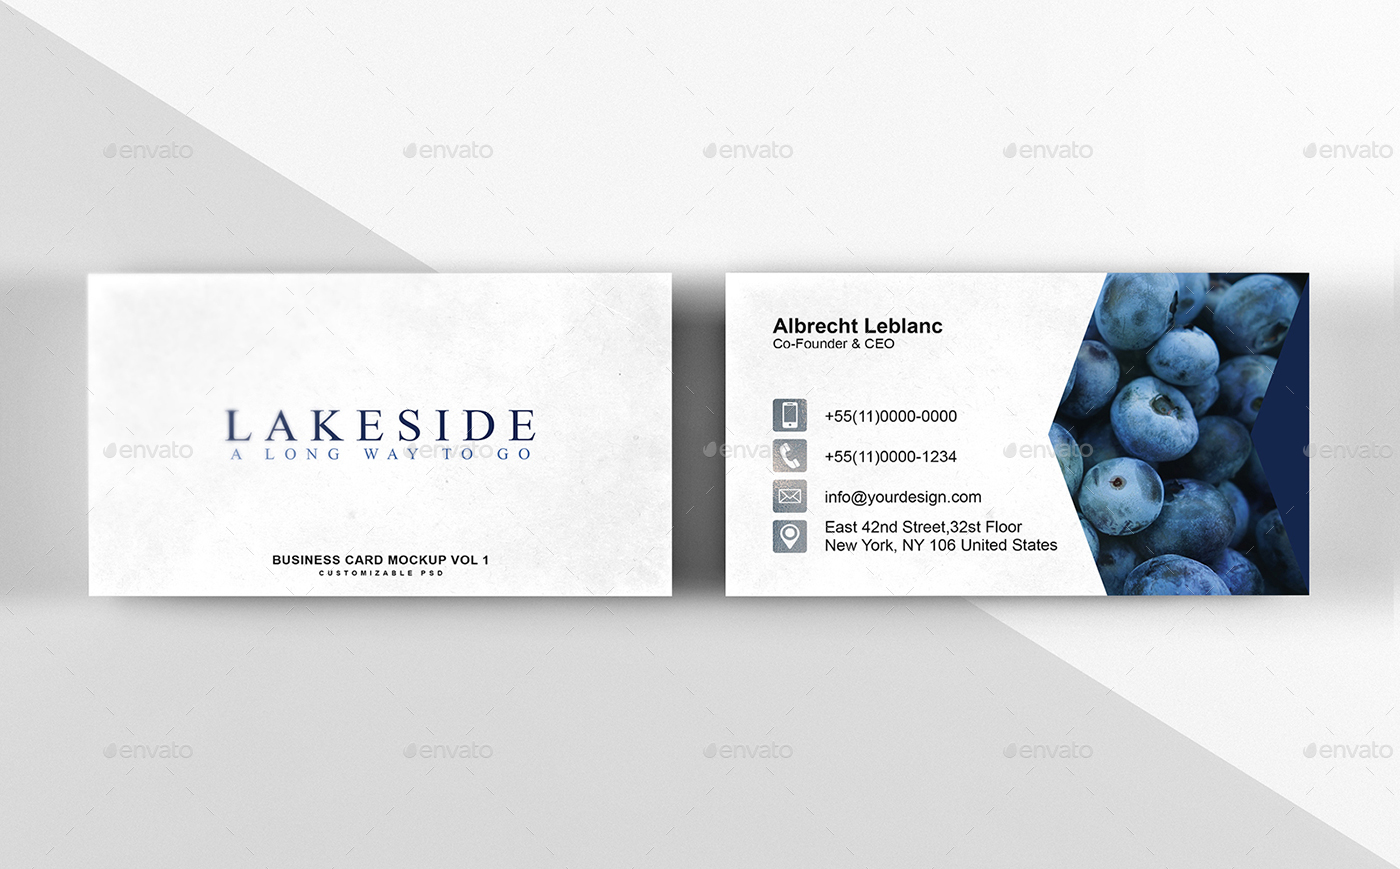 Business card mockup vol 1 by honnumgraphicart graphicriver business card mockup vol 1 15g reheart Images